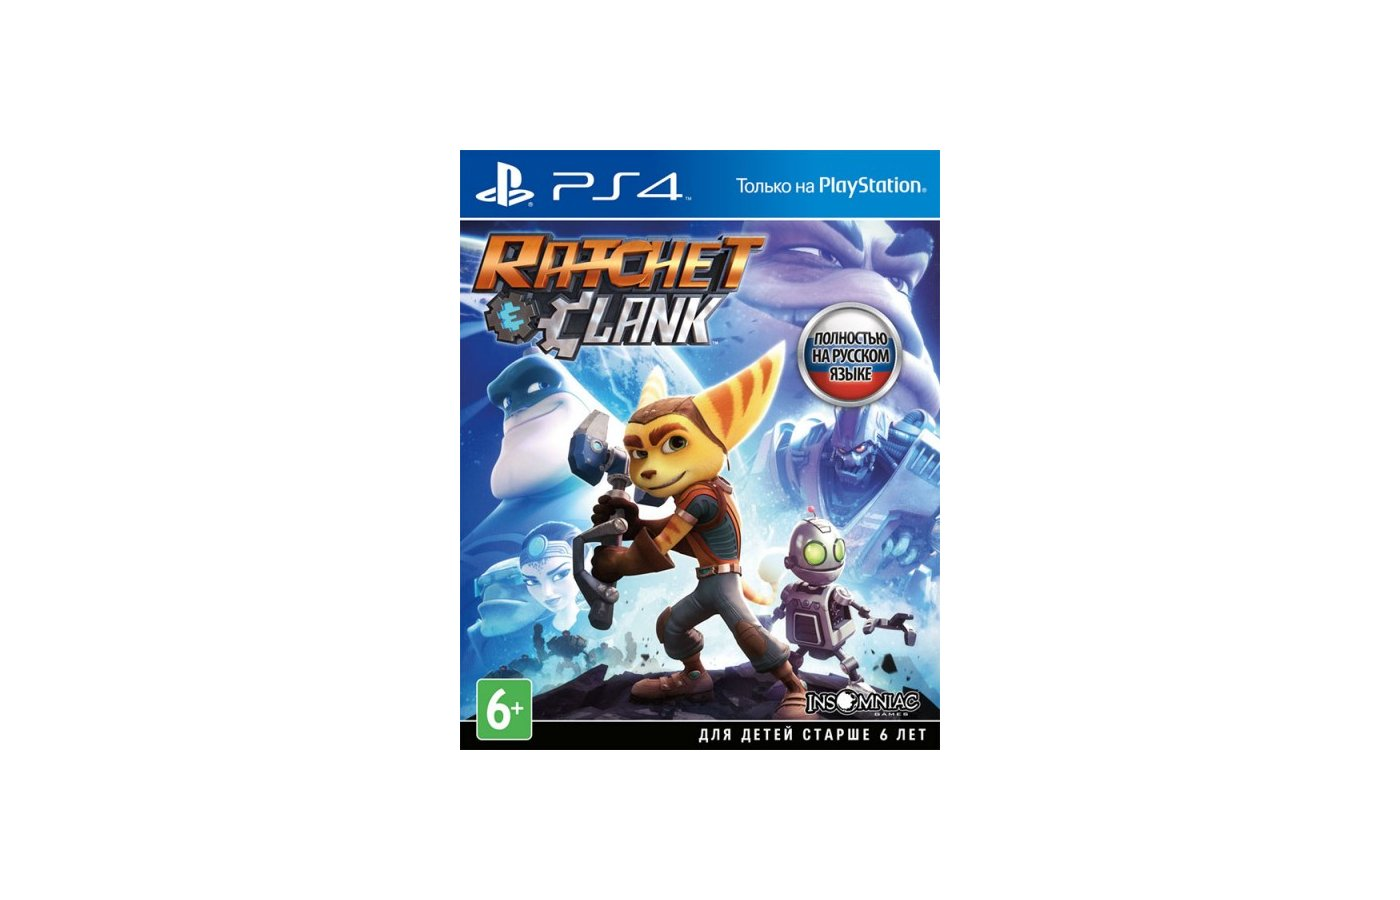 Ratchet and clank ps4